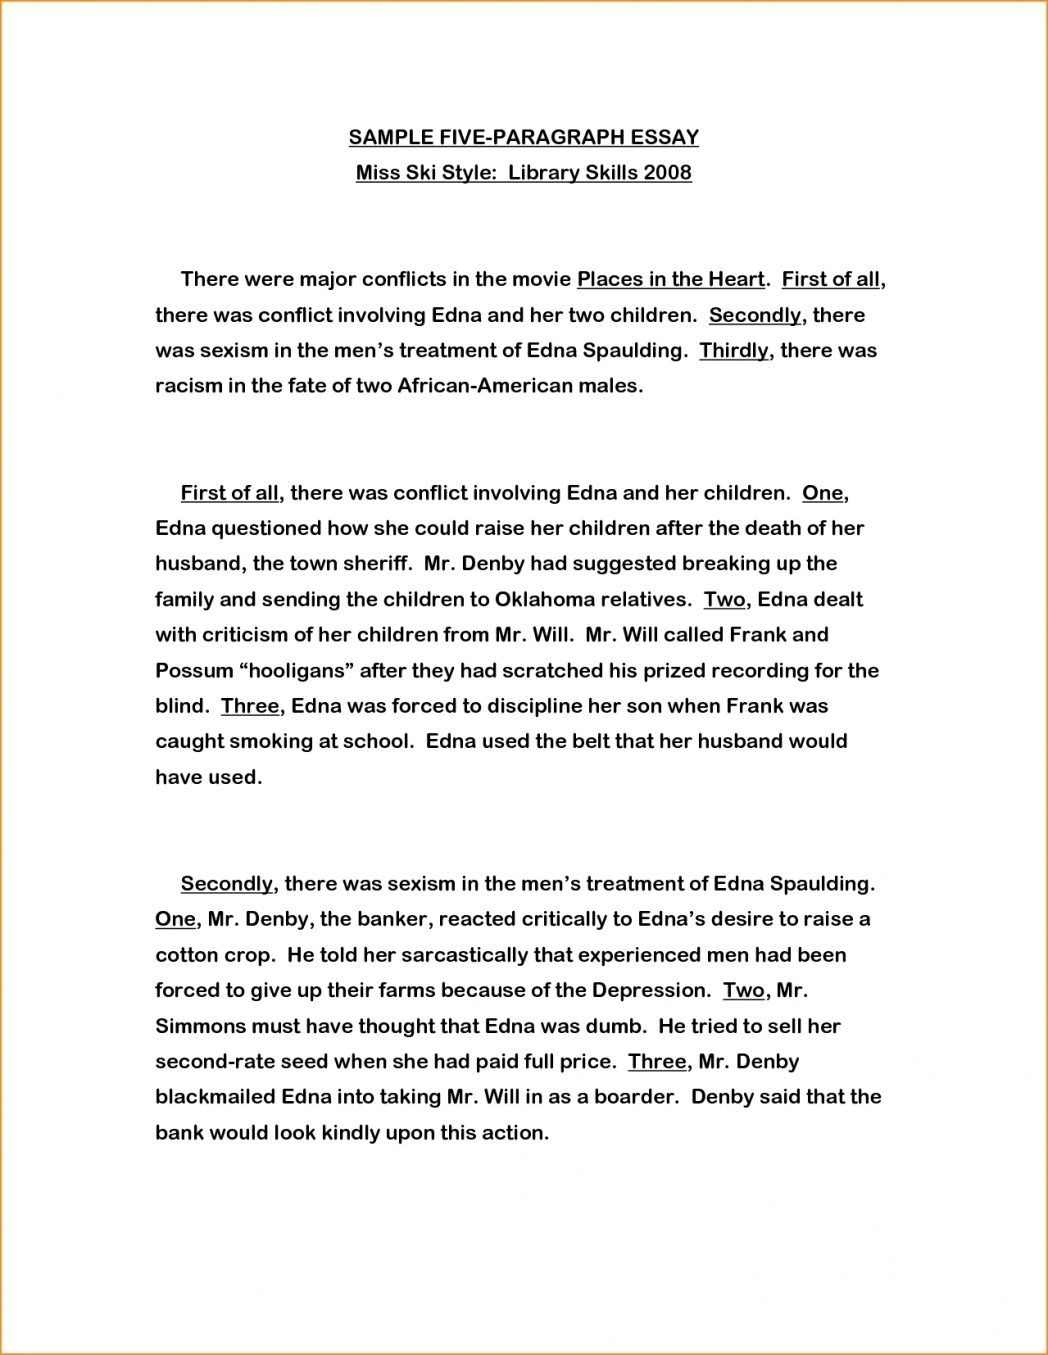 3 Paragraph Essay Example Elementary Writings And Essays Corner With 3 Paragraph Essay Example For Kids 201820003 Paragraph Essay Essay Essay Examples